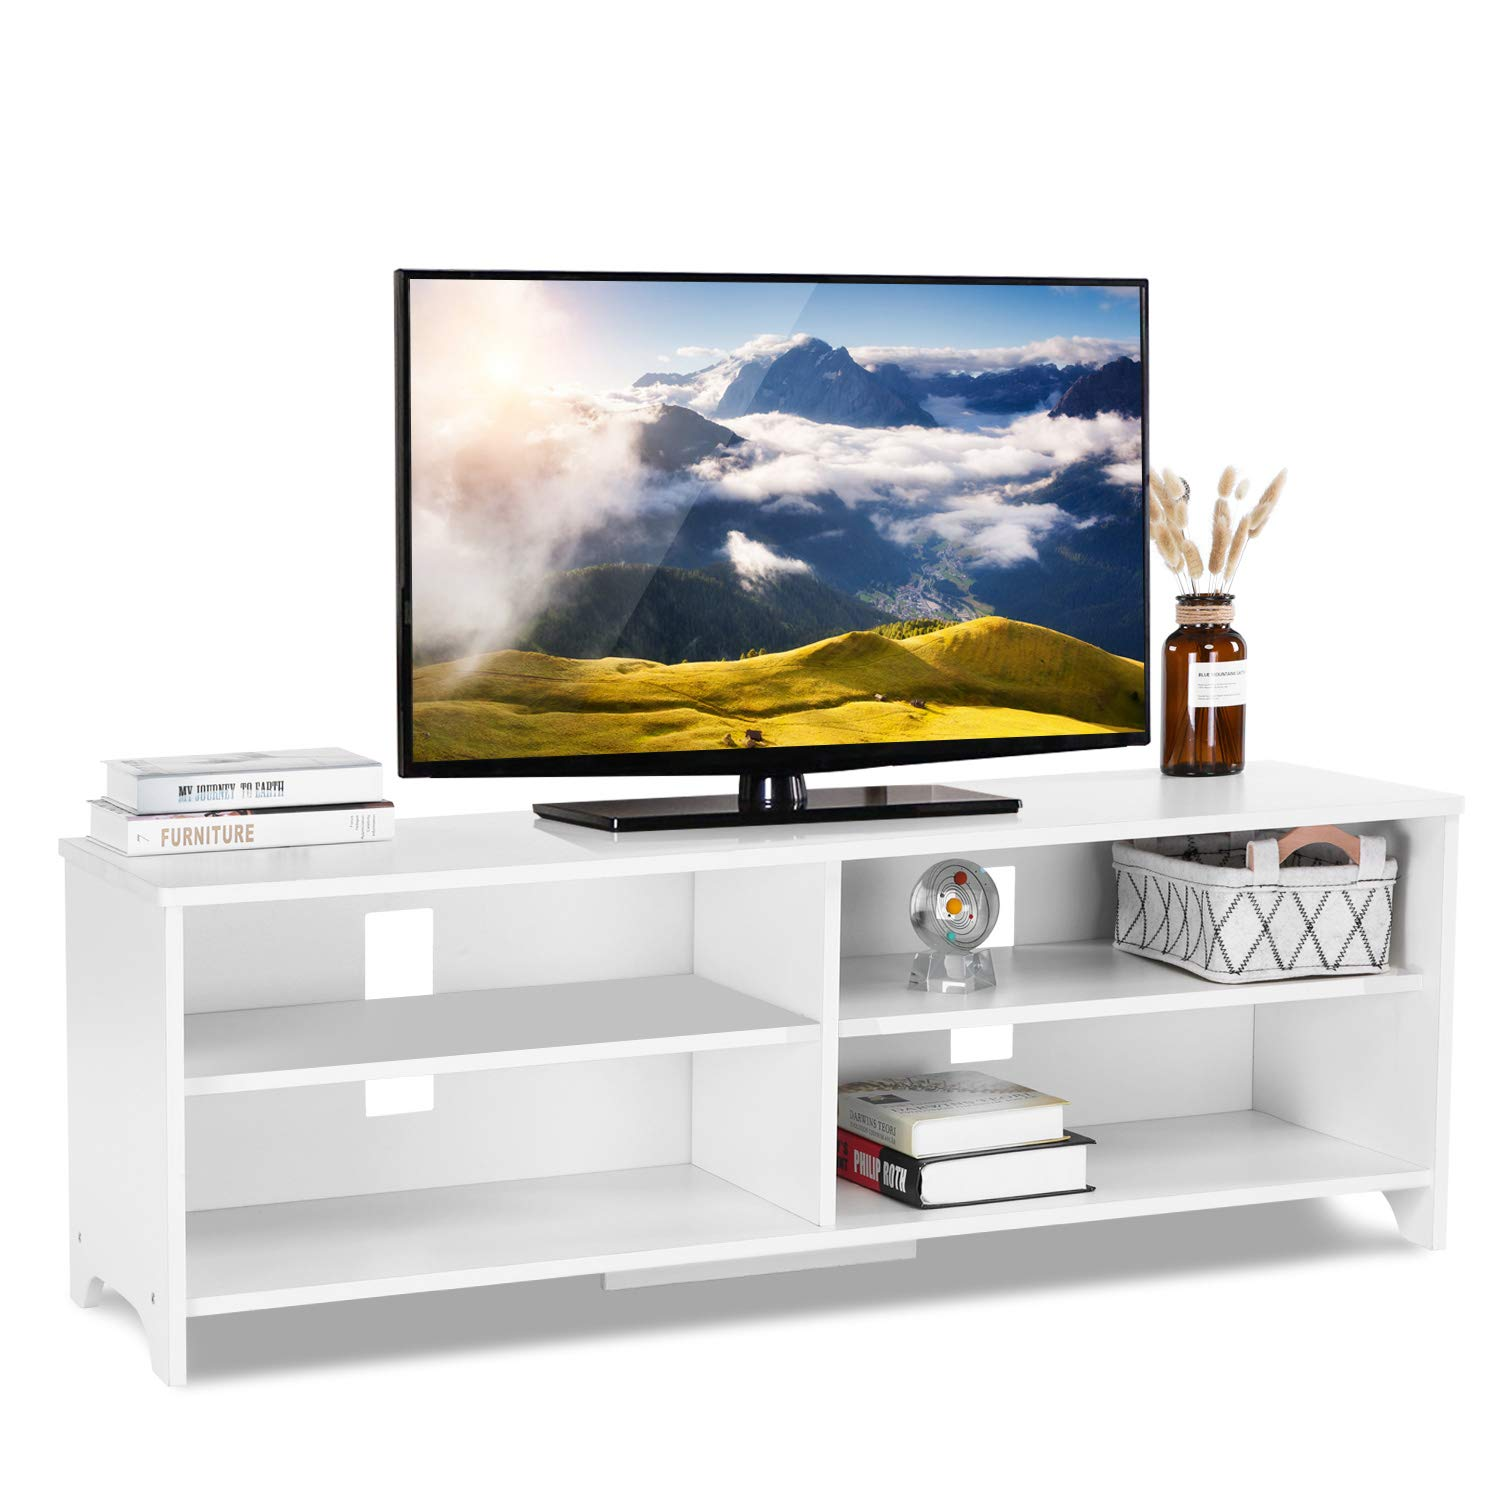 ADD ONE +1 Wood TV Stand Storage Console, Black